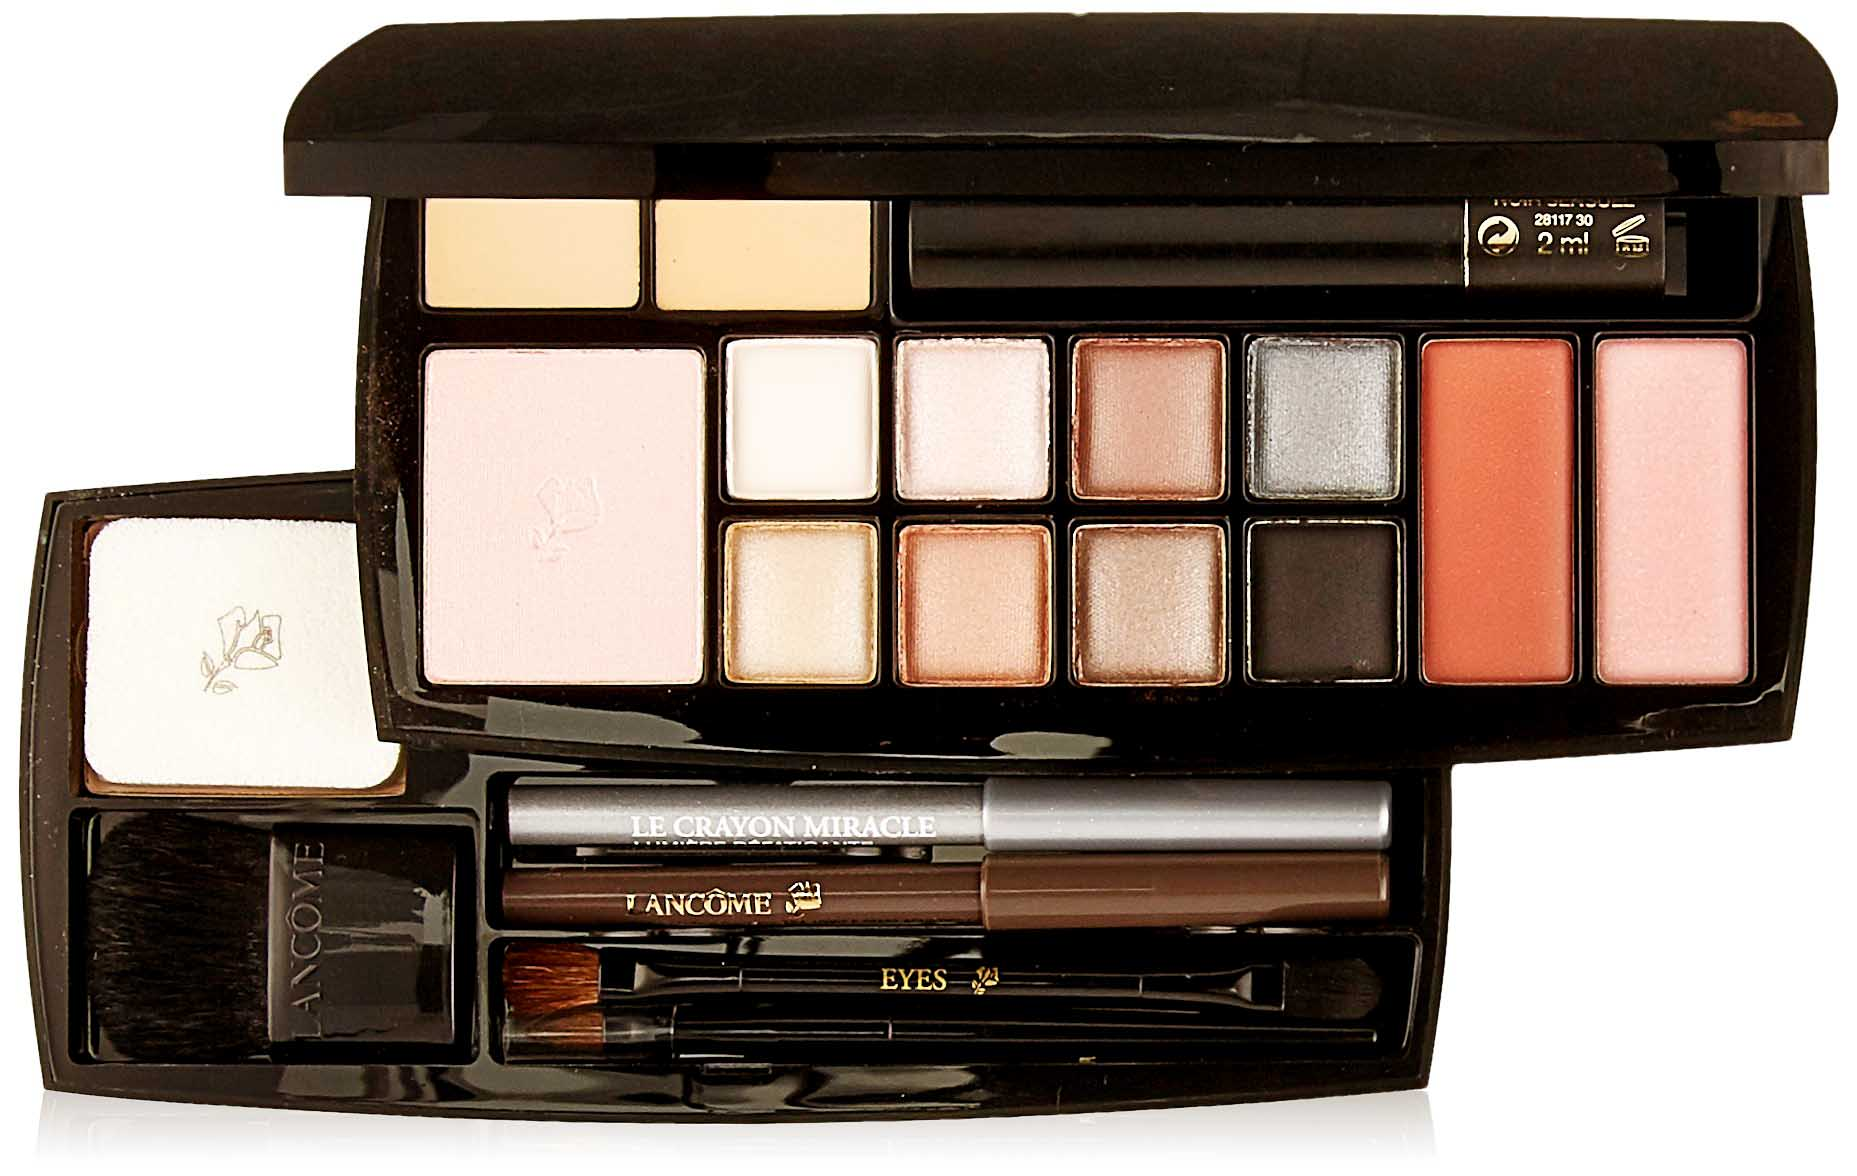 Top 10 best makeup kits of Best For Women and Beauty salons